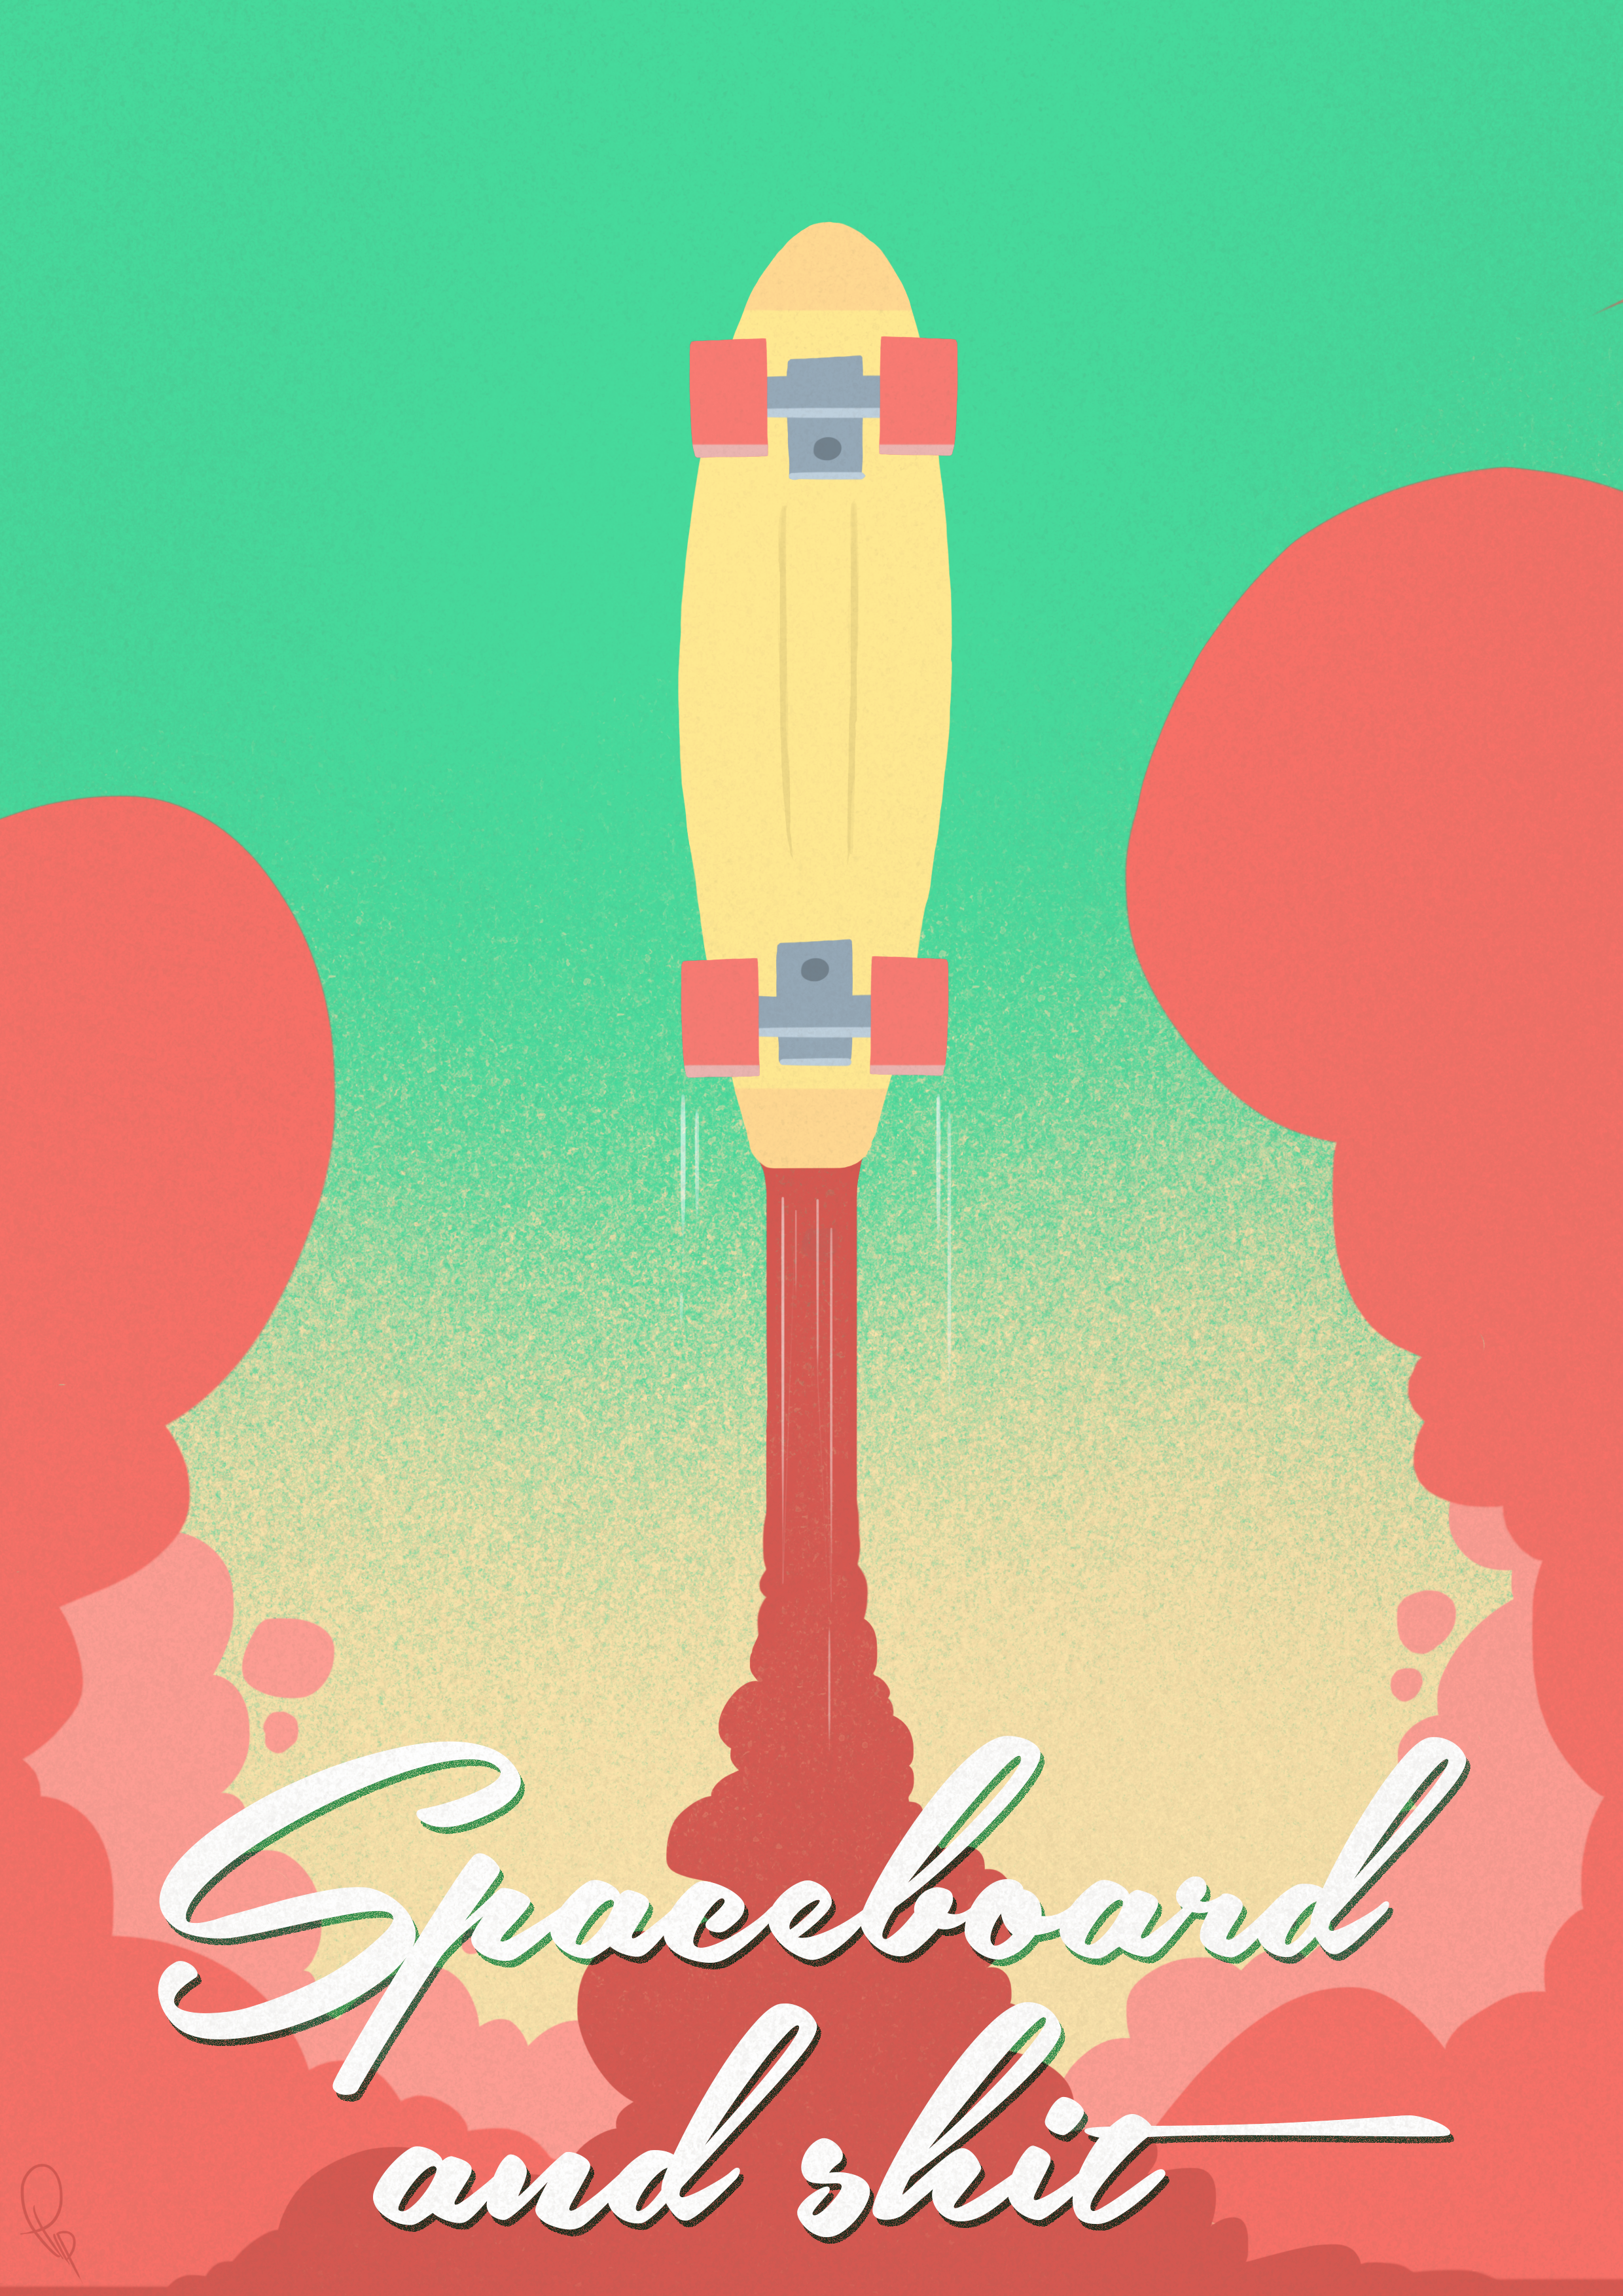 Spaceboard.png